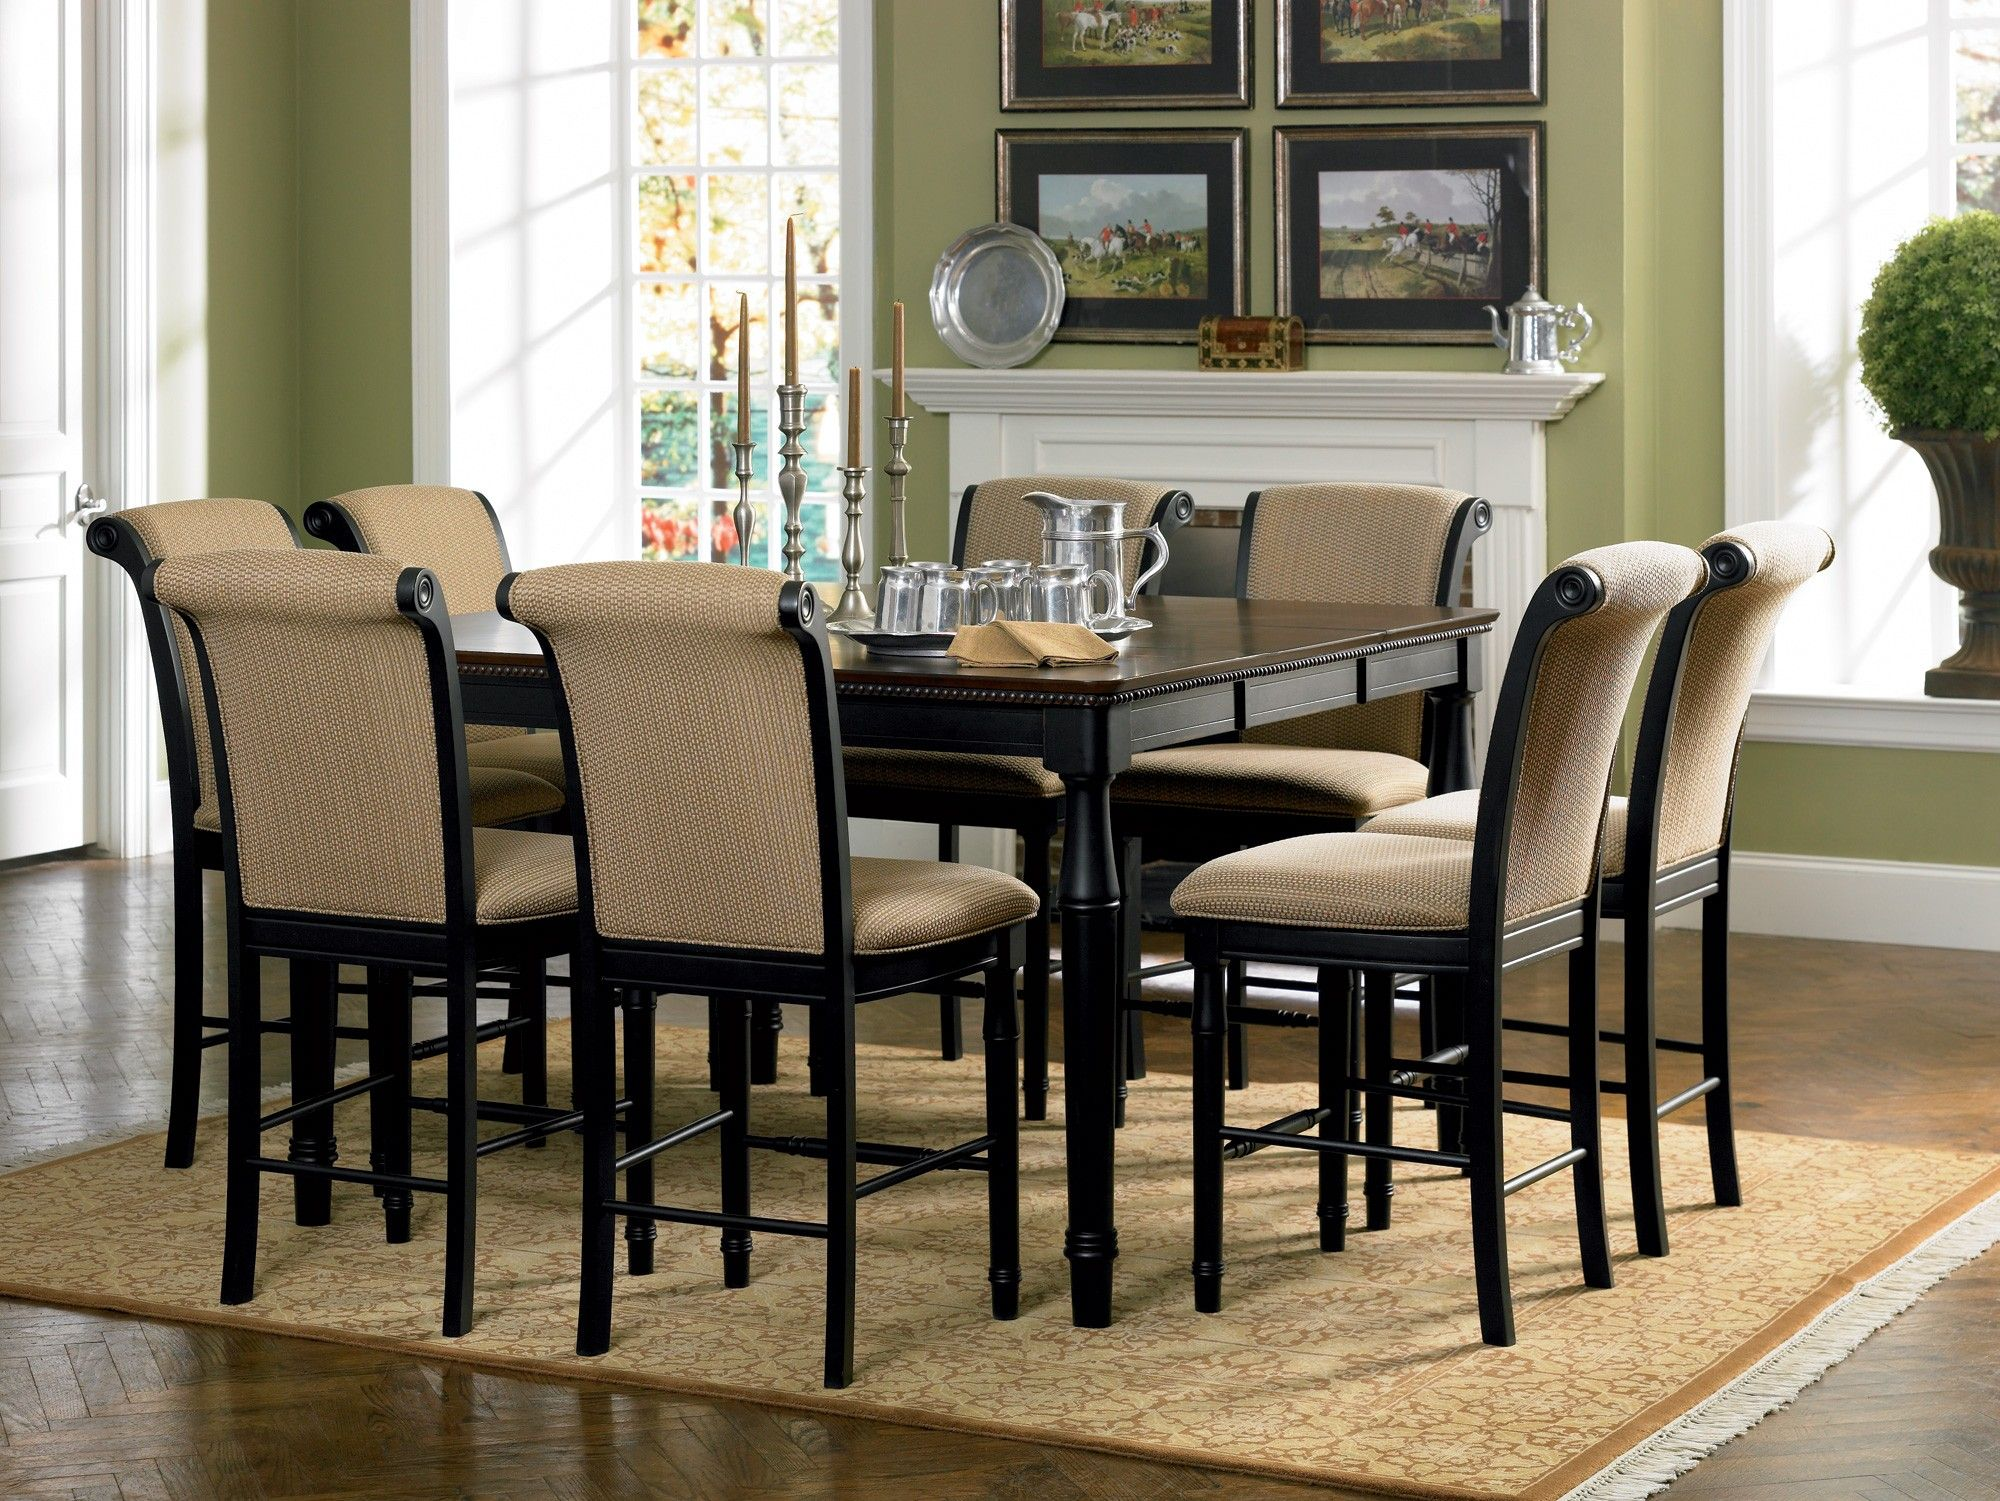 Dining room table sets with leaf check more at casahoma